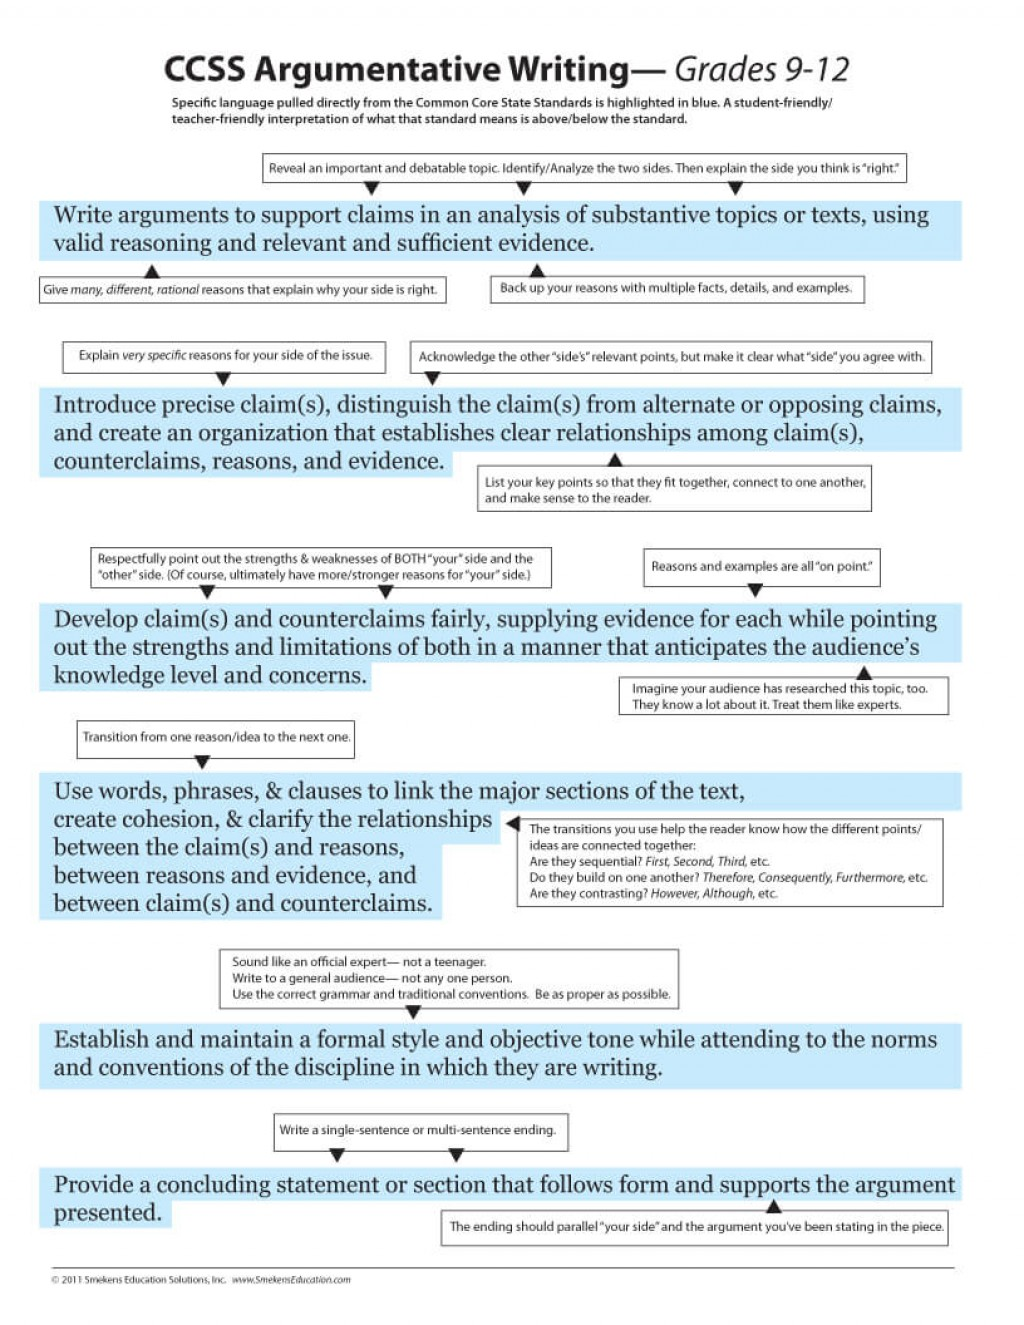 002 Essay Example The Proper Style For An Argumentative Is Ccss Grade 9 Stunning Academic. Friendly. Informal. Personal Formal Casual Informal Quizlet Large